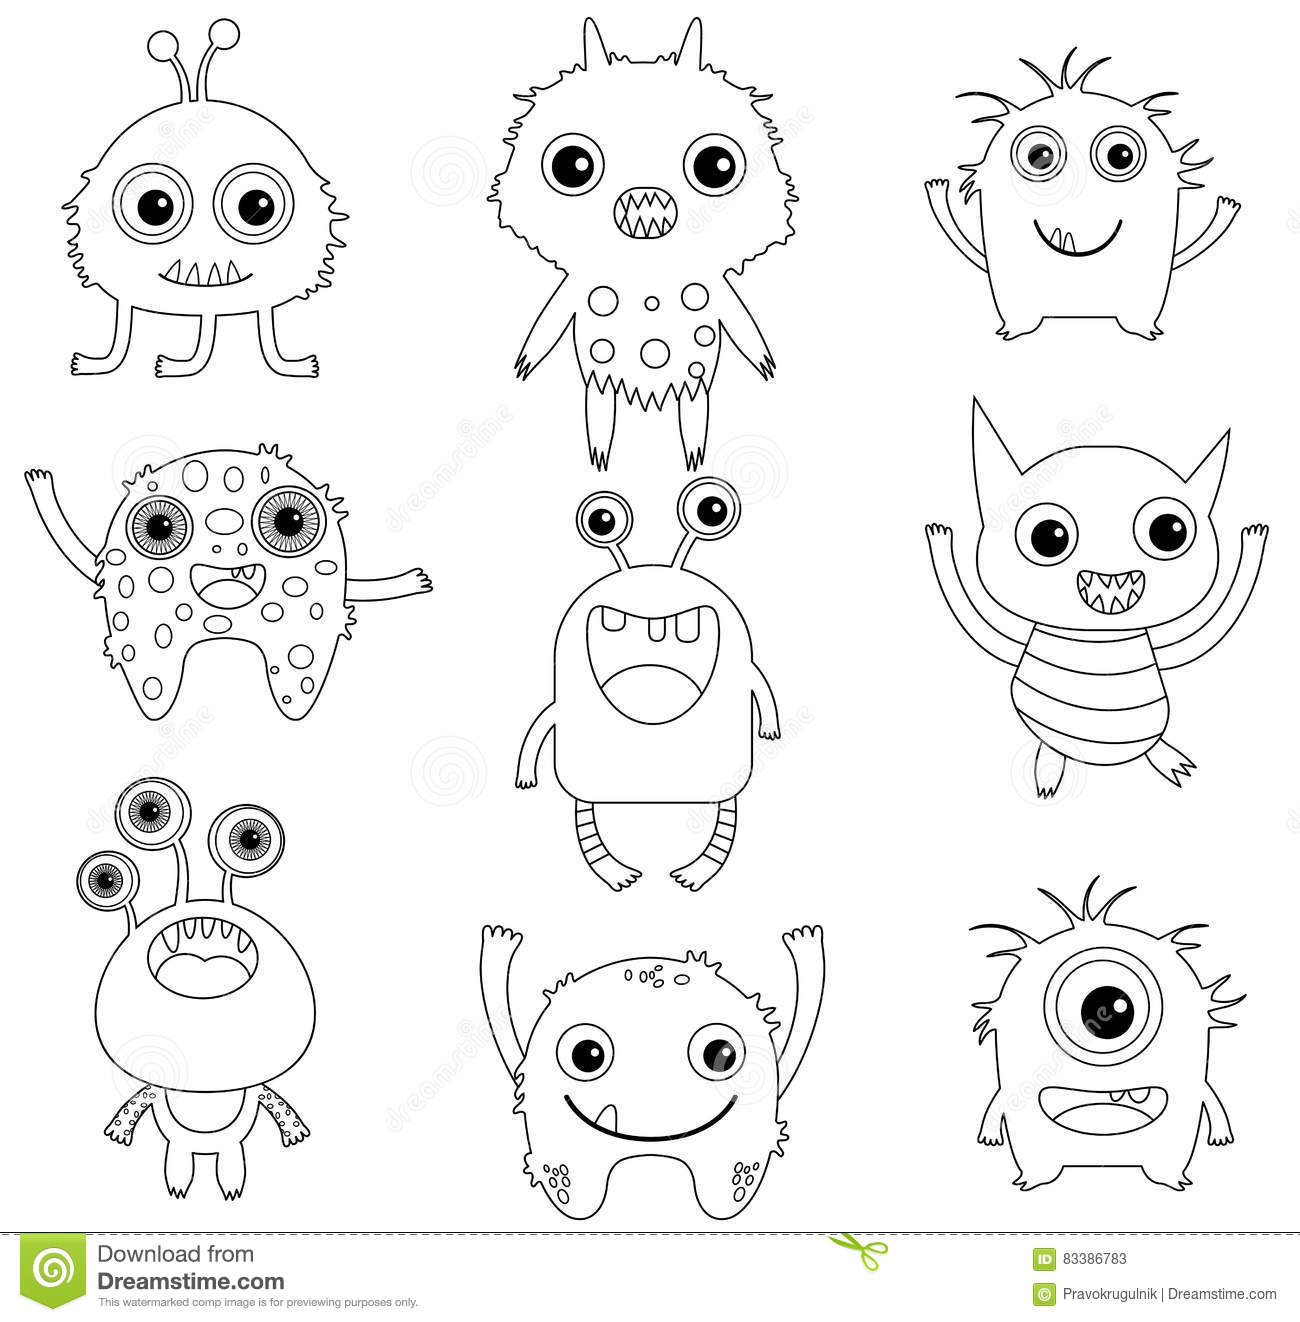 a collection of funny and cute monsters